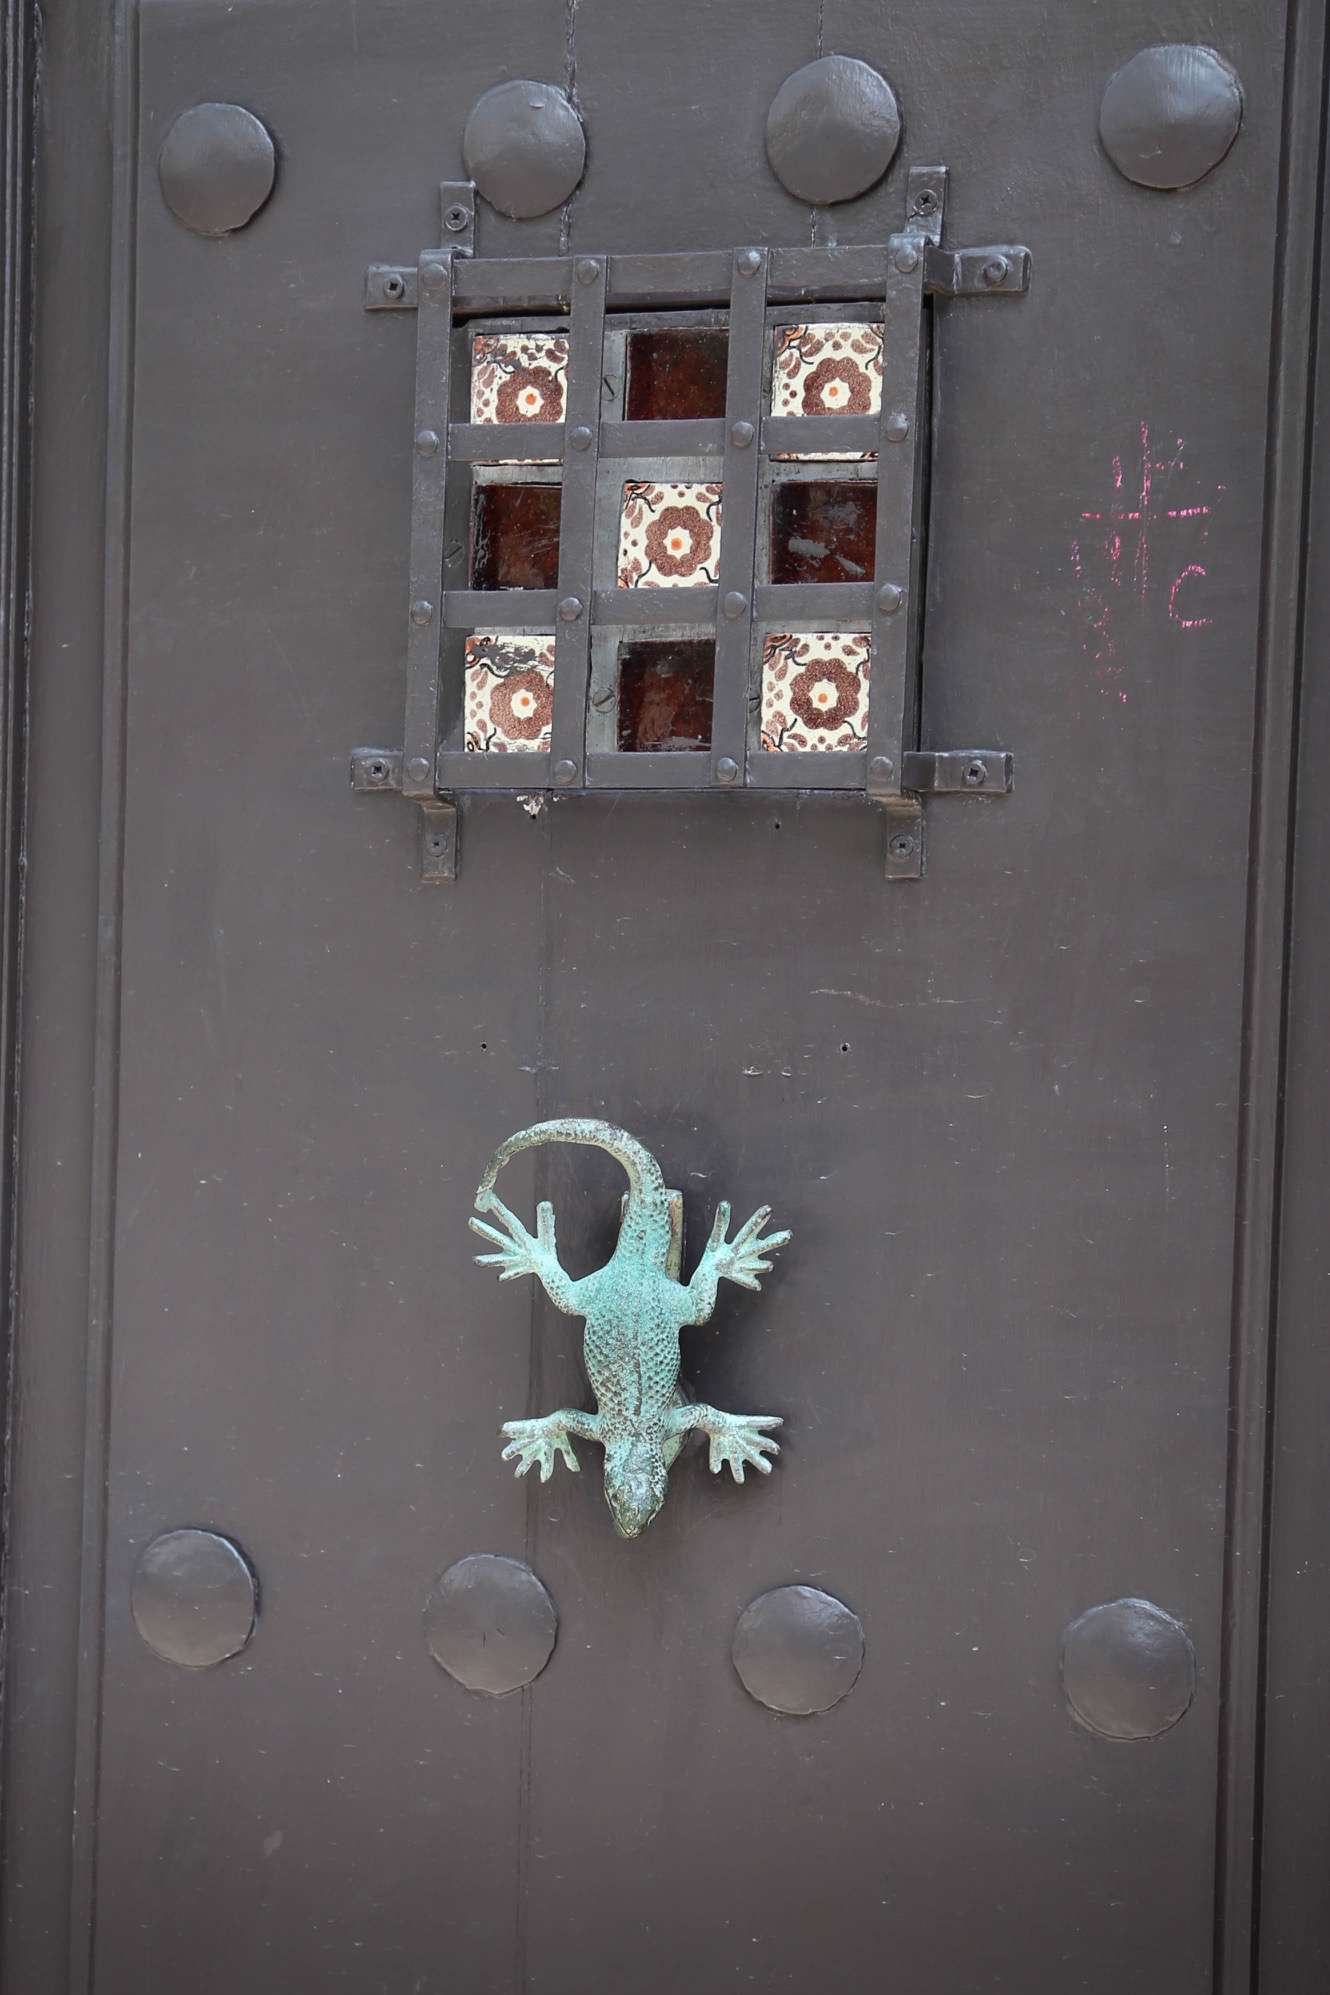 The door is a bit plain, but the lizard adds a distinctive touch.